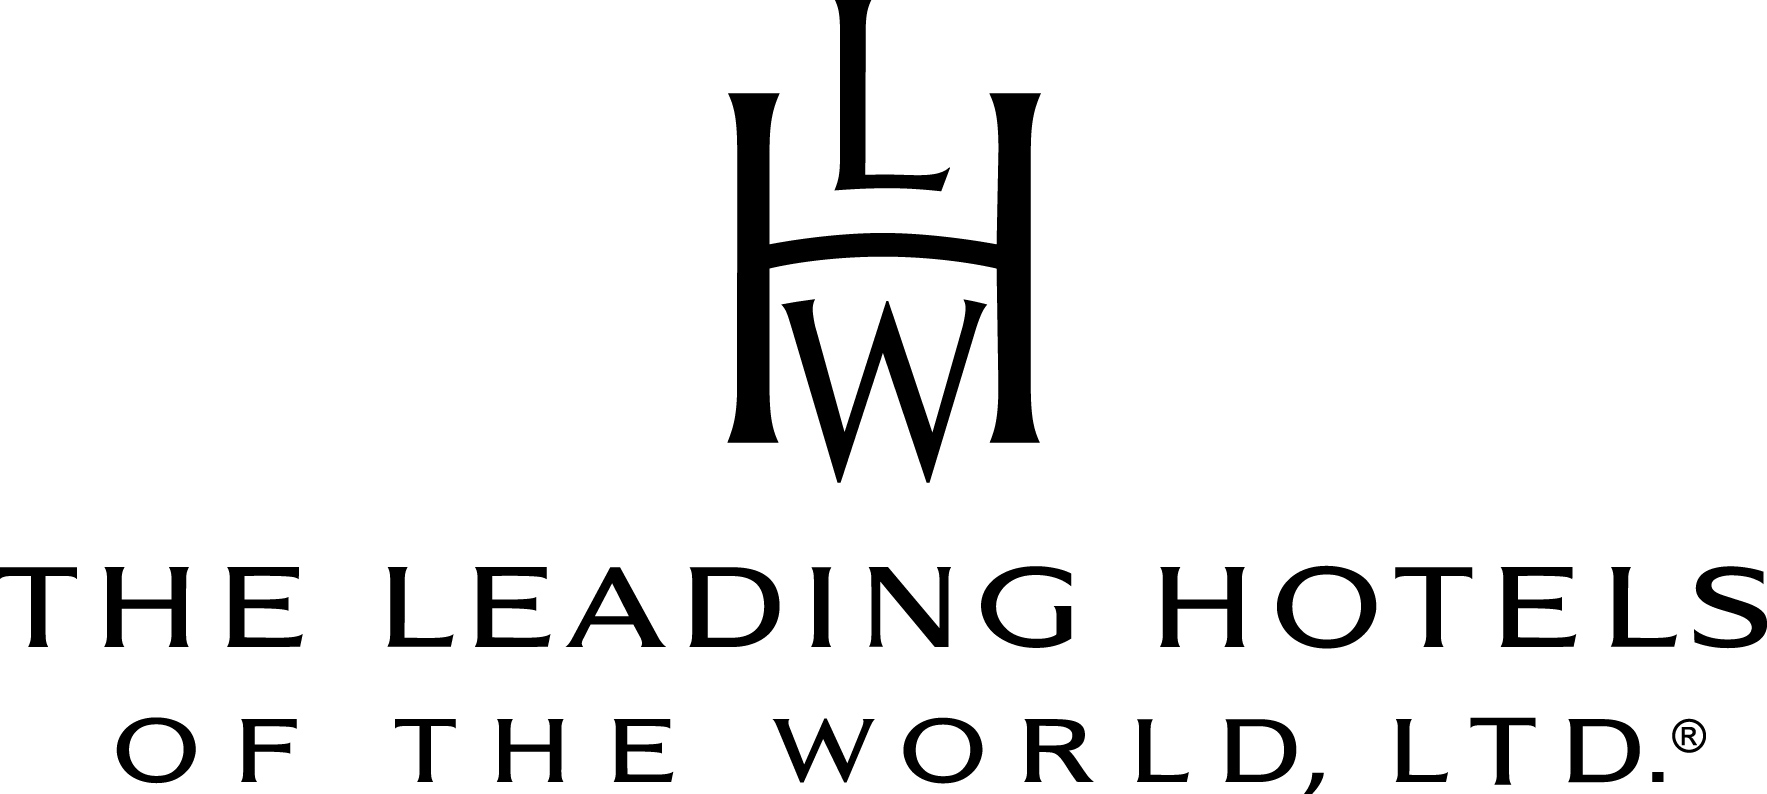 Leading hotels of the world logo